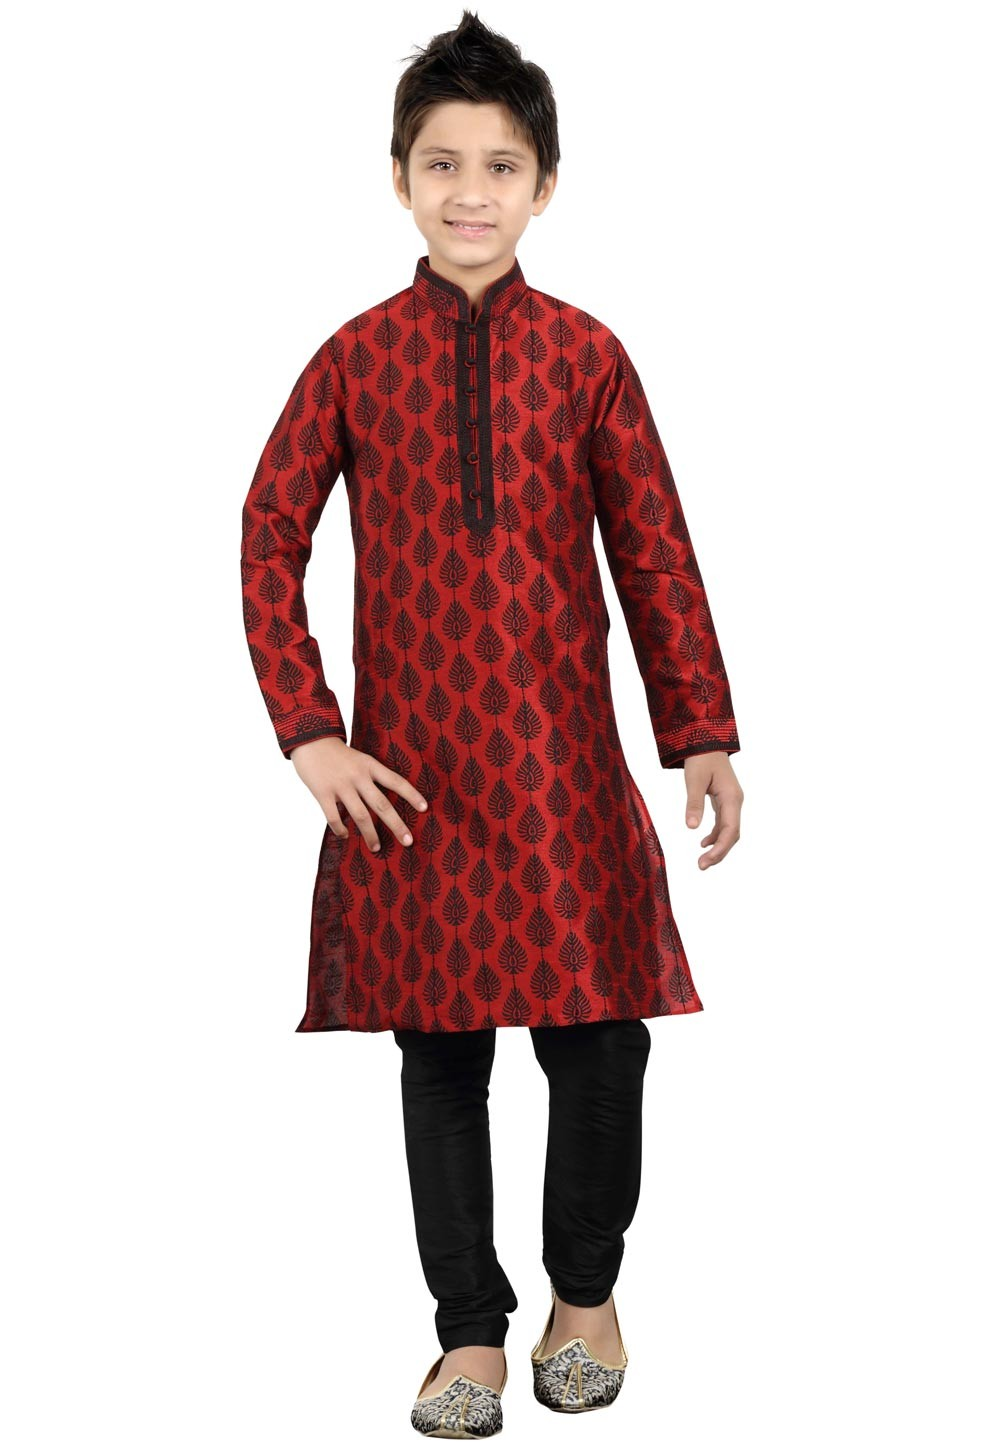 Maroon Color Boy's Party Wear Kurta Pajama.